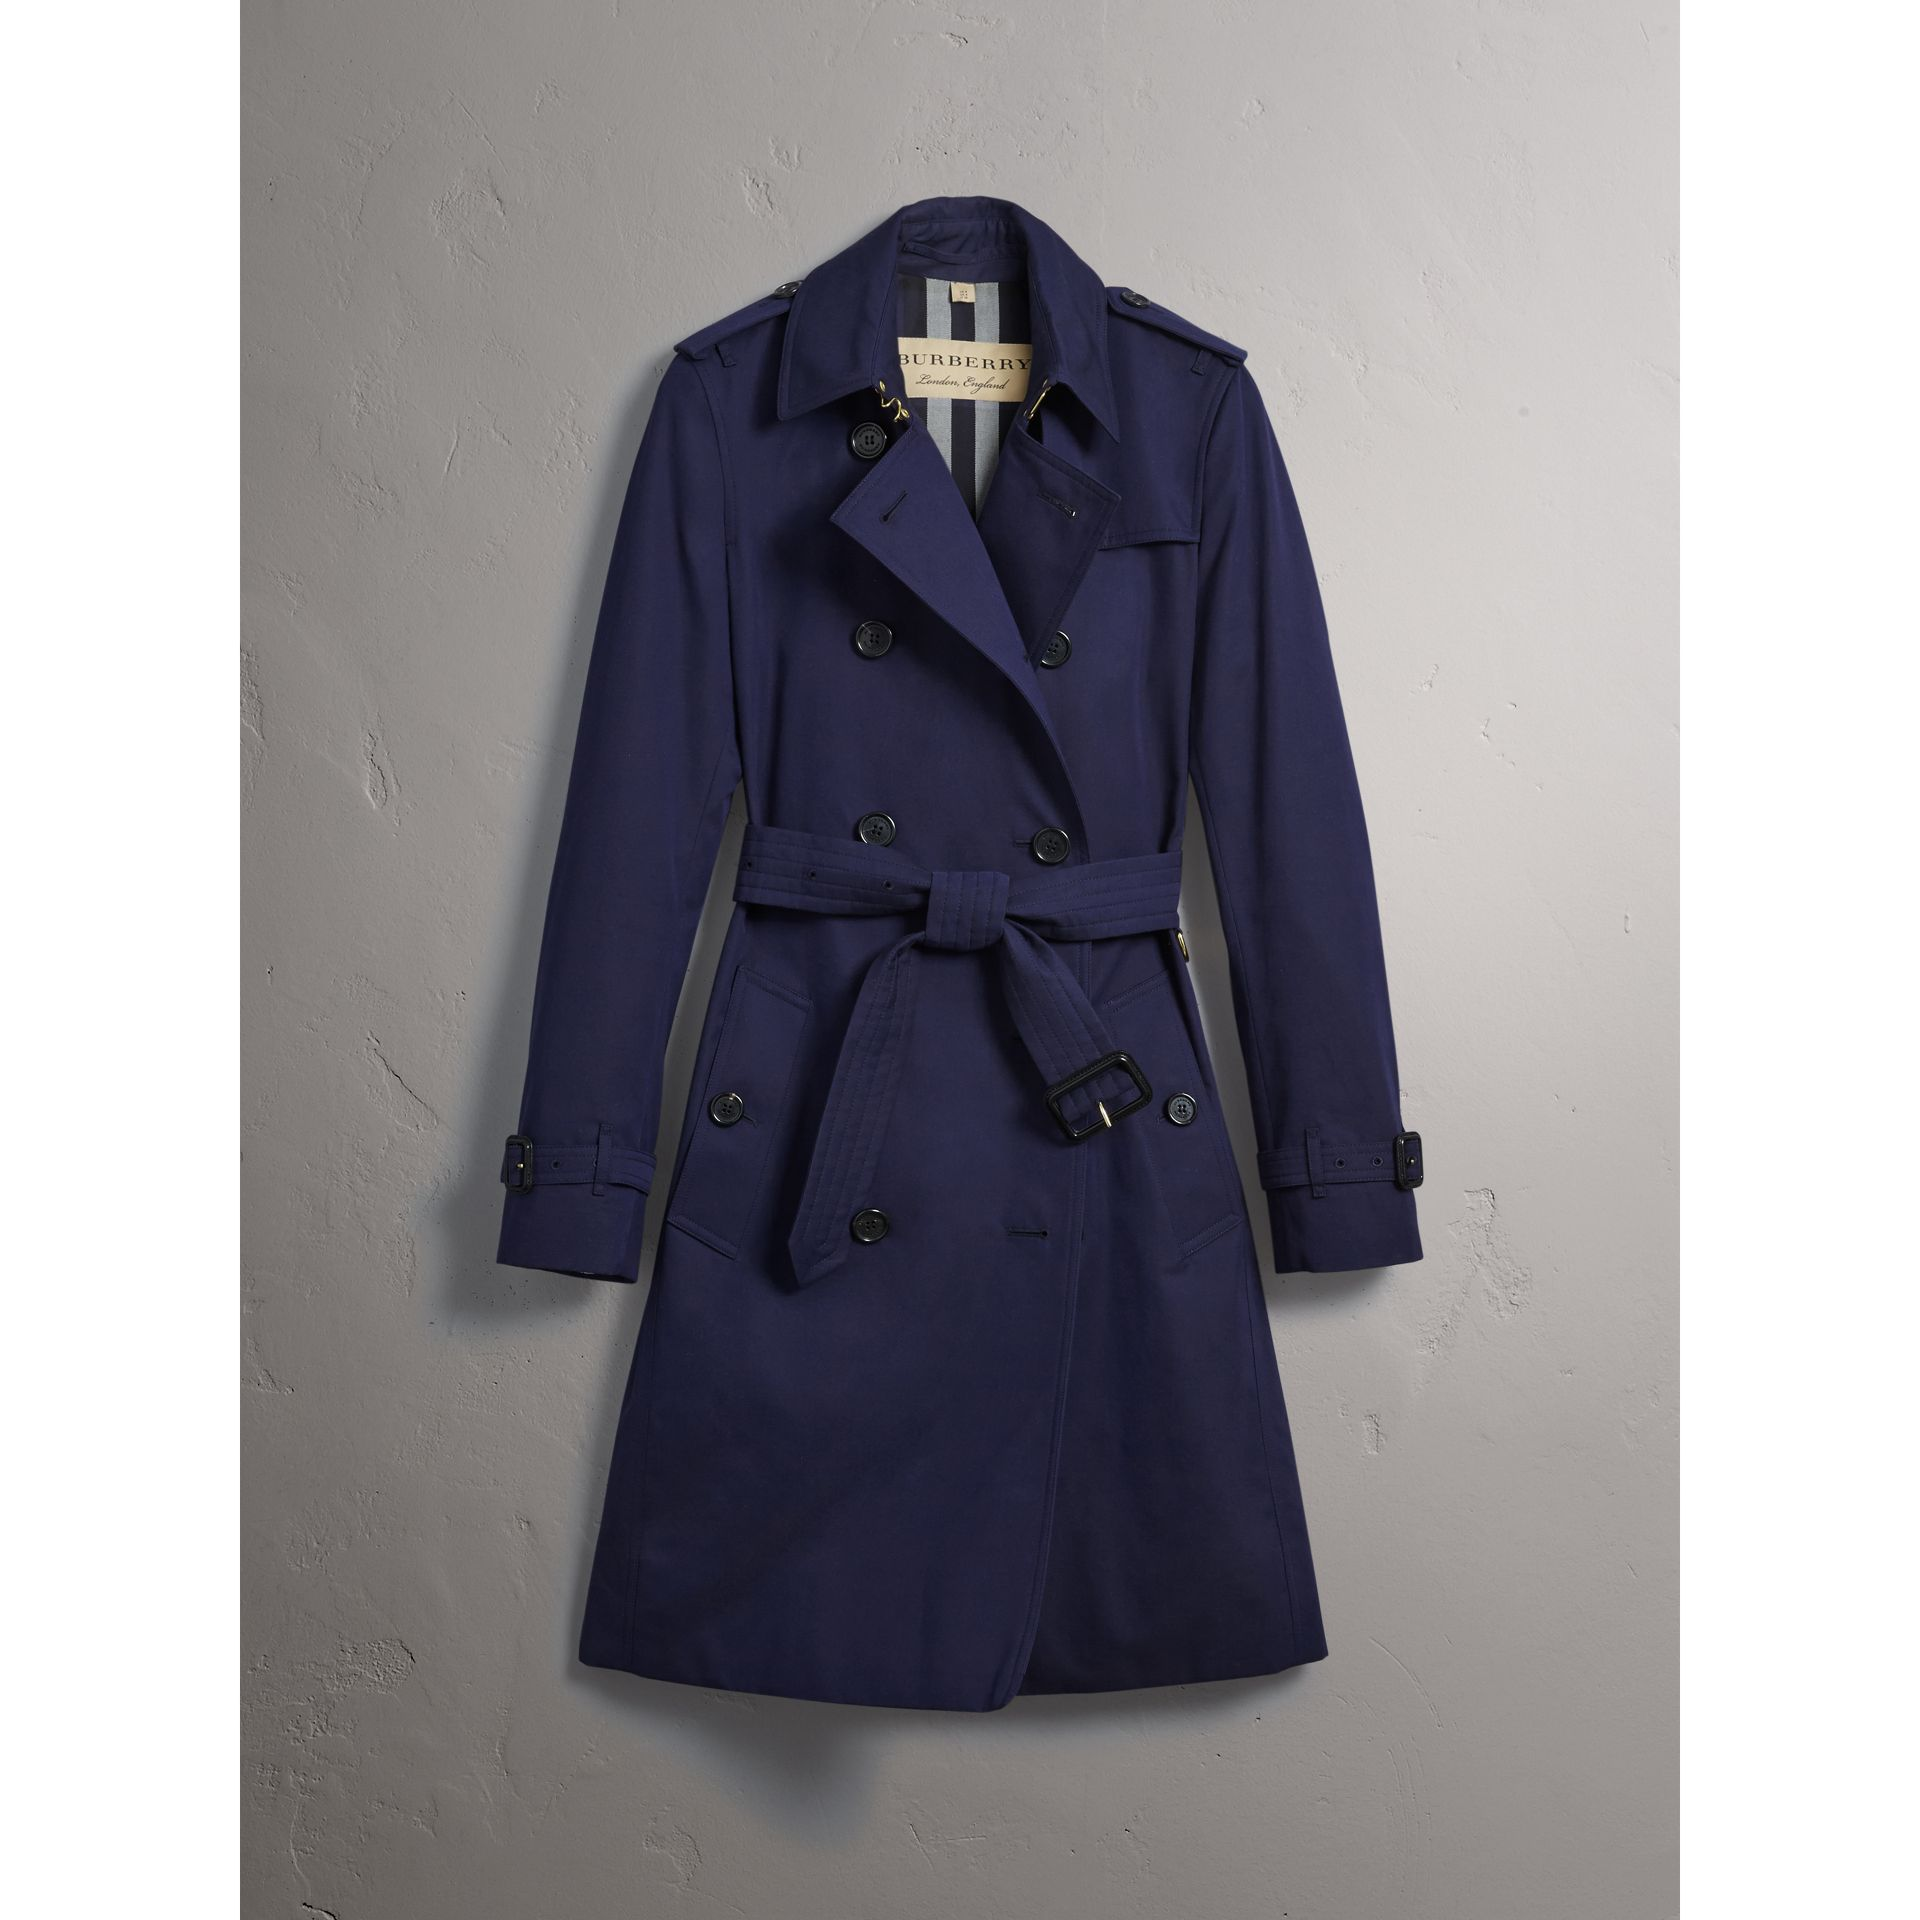 Cotton Gabardine Trench Coat in Blueberry - Women | Burberry - gallery image 4